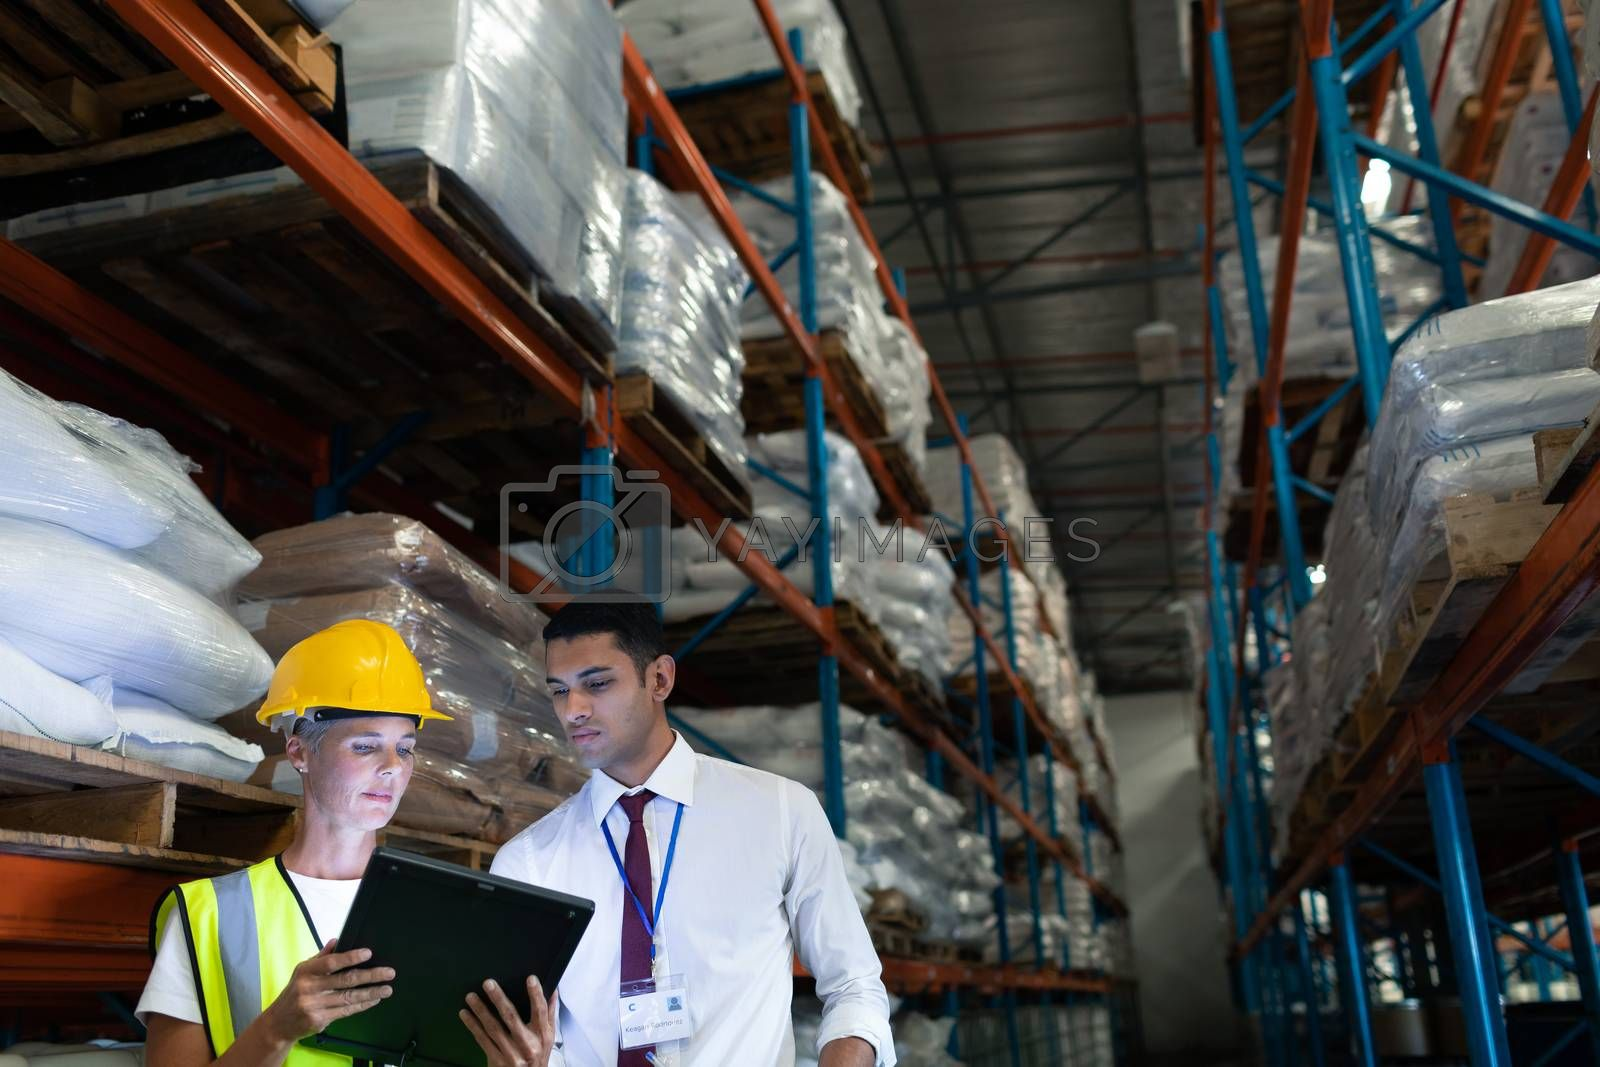 Front view of mixed-race Attentive male and female staffs discussing over digital tablet in warehouse. This is a freight transportation and distribution warehouse. Industrial and industrial workers concept